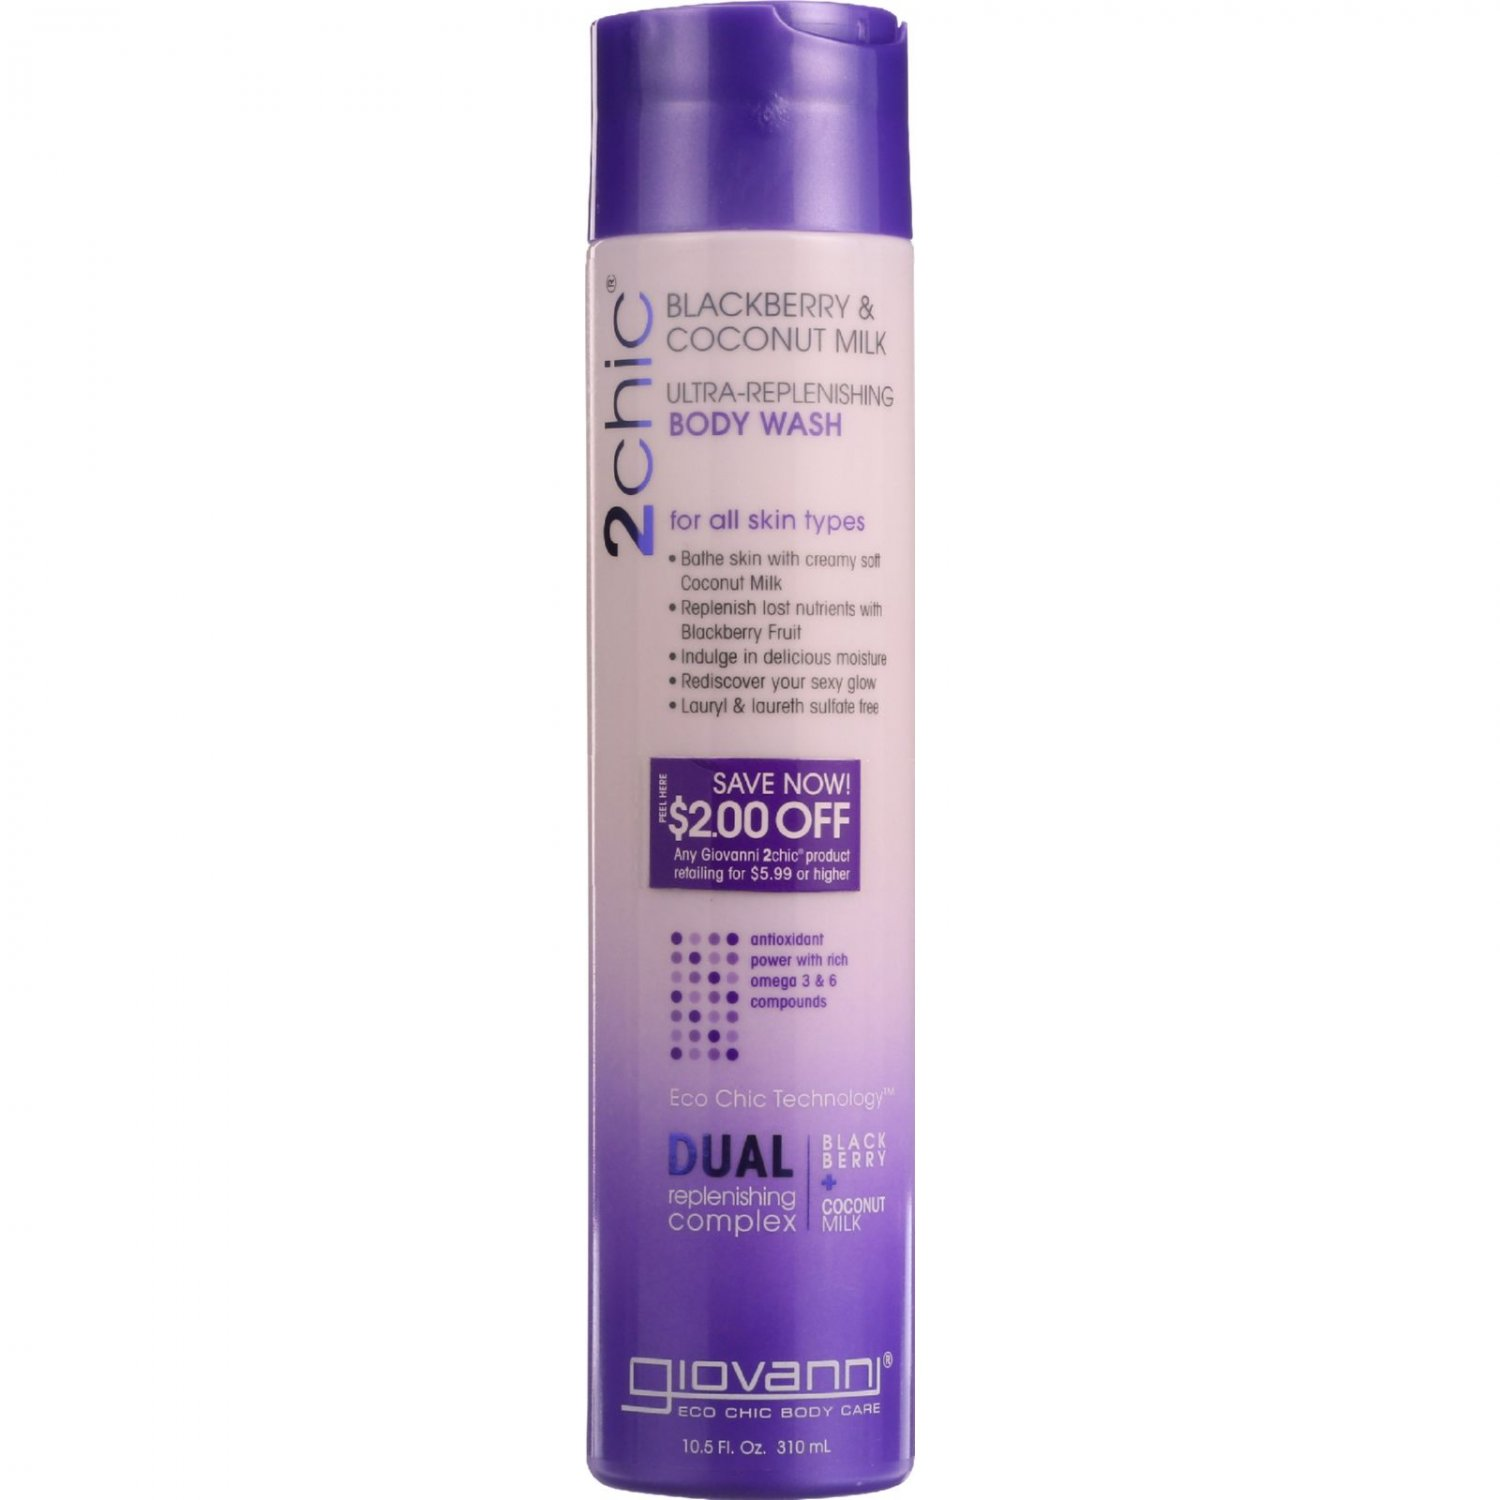 Giovanni Hair Care Products Bodywash - 2Chic - Ultra-Replenishing - Blackberry and Coconut Milk - 10